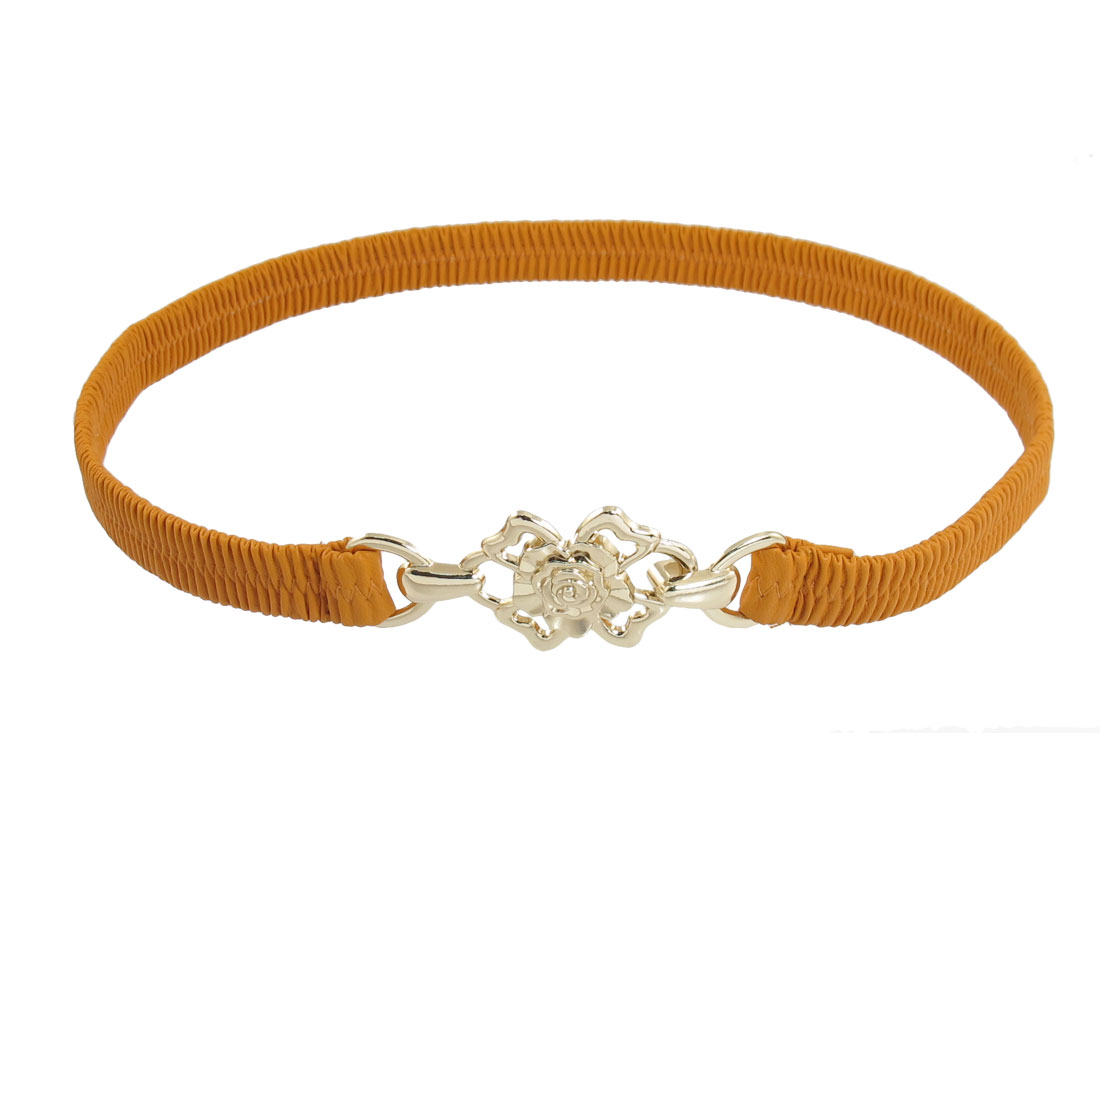 Metal Floral Shaped Buckle Stretched Orange Waist Belt Band 16mm Wide for Women